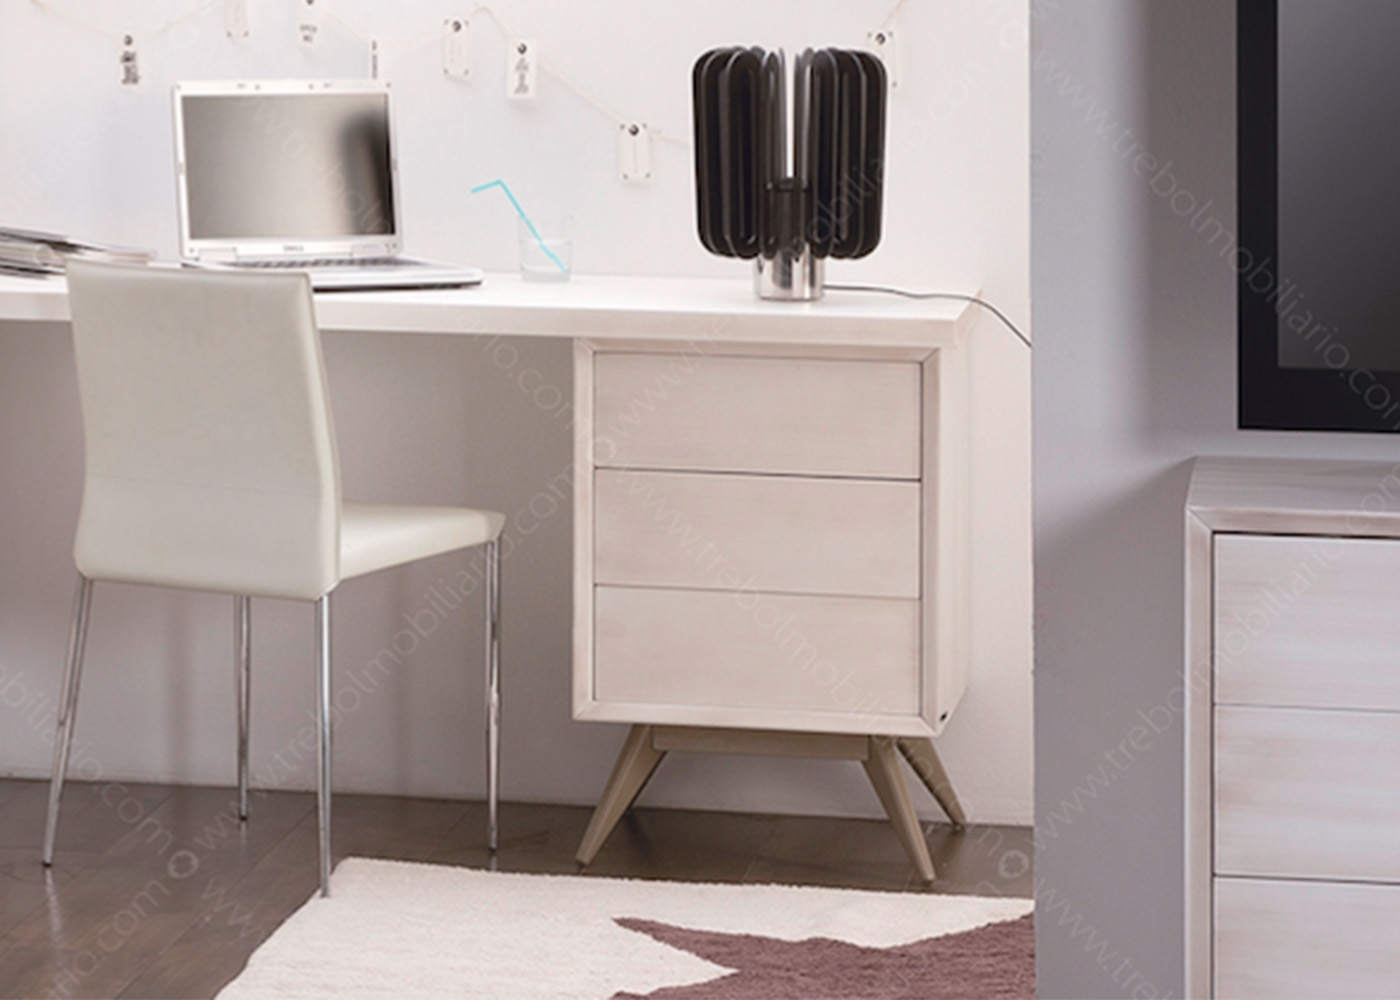 caisson de bureau au design scandinave de qualit chez ksl living. Black Bedroom Furniture Sets. Home Design Ideas